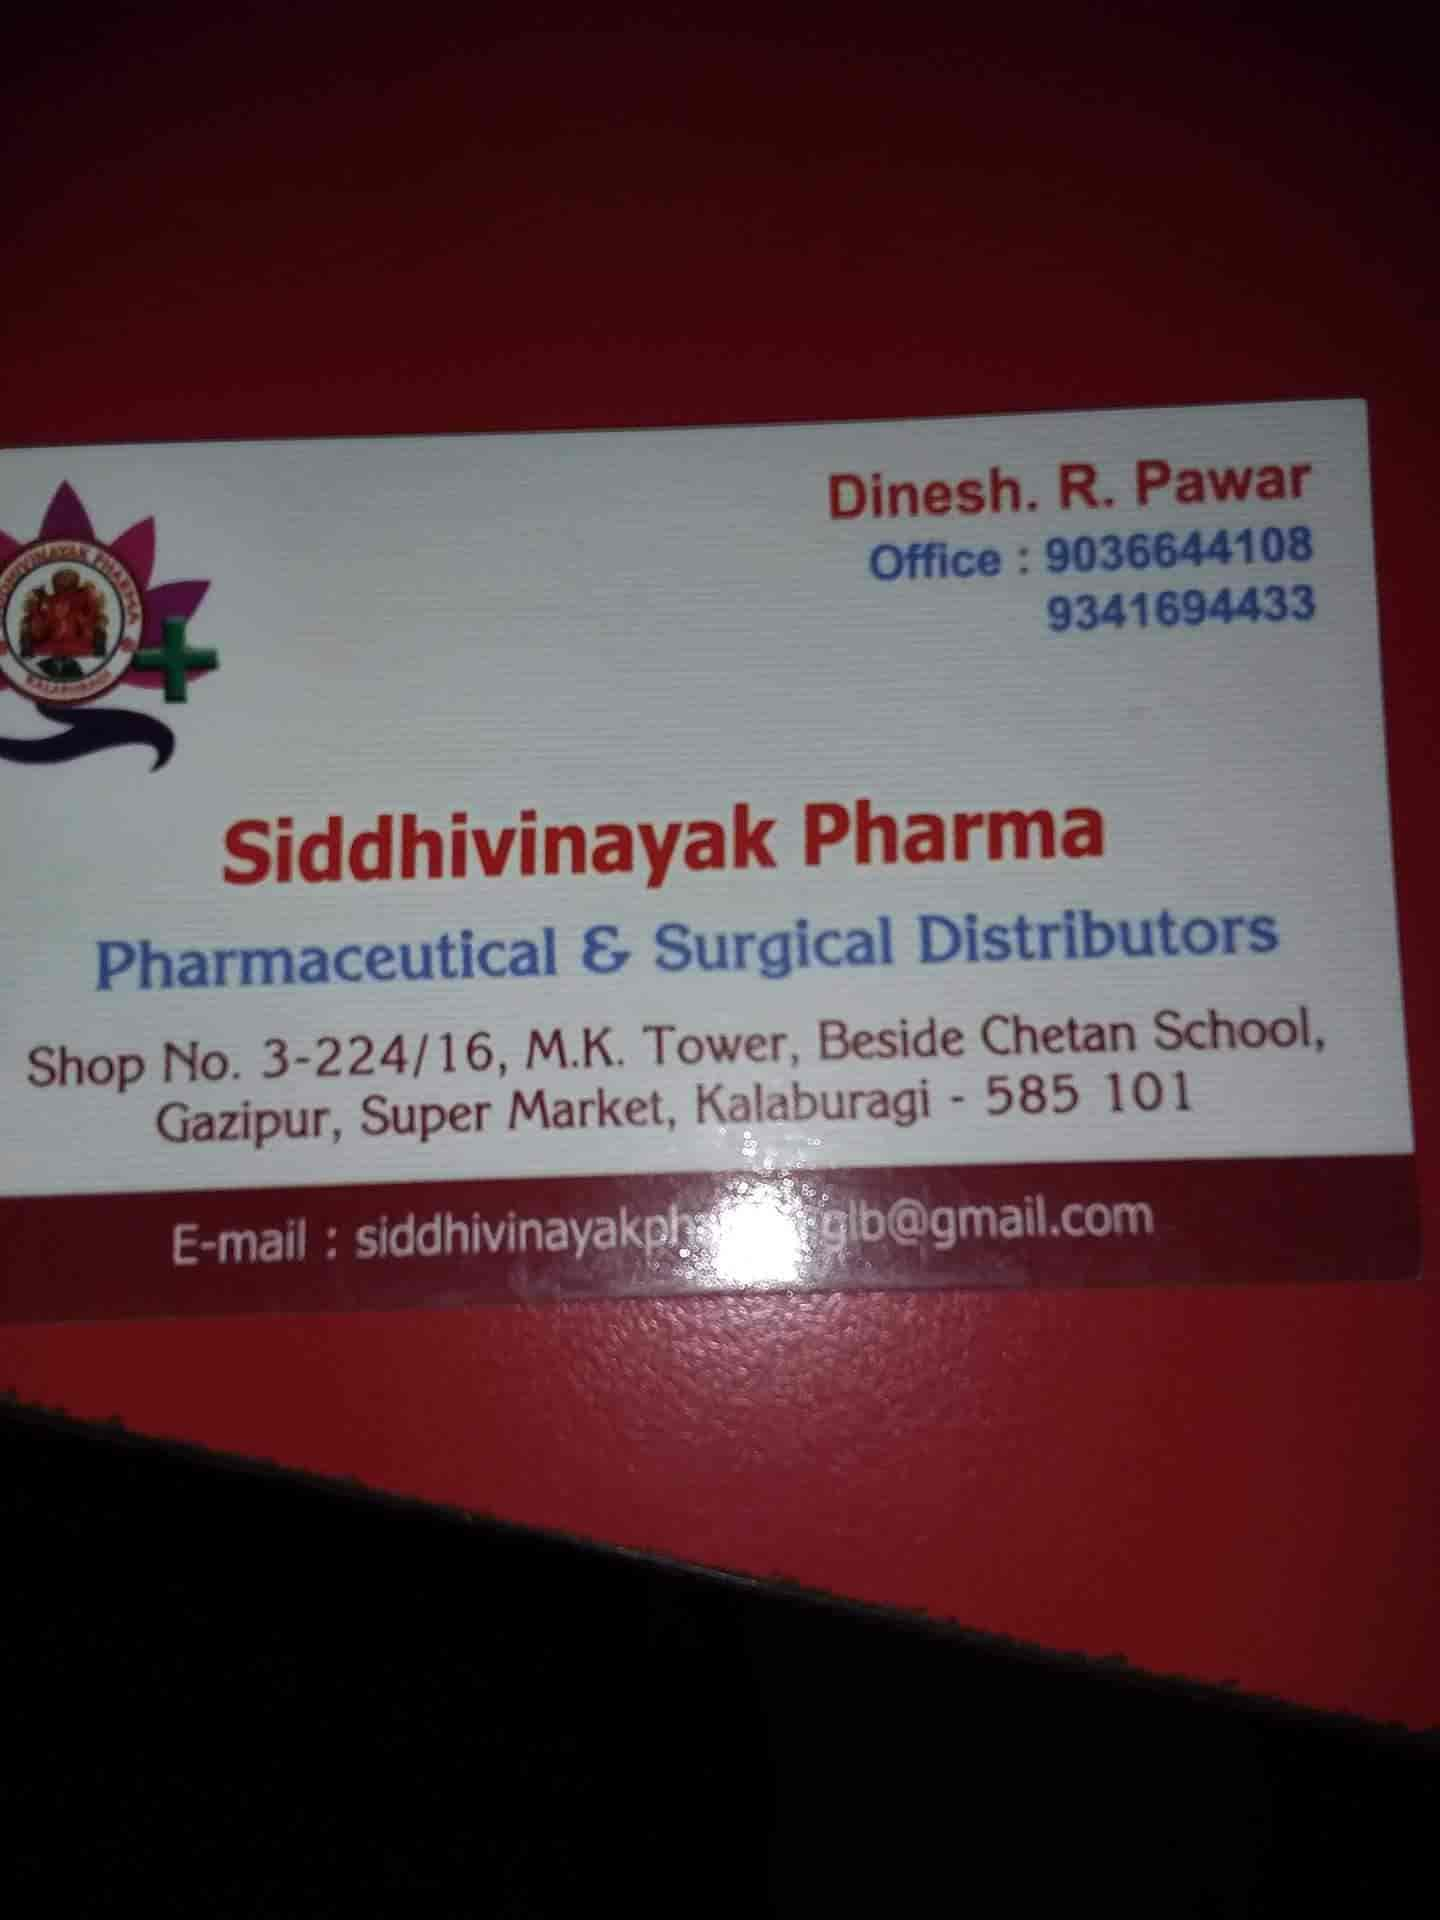 Siddhivinayak Pharma Surgical Distributor Photos, Gulbarga